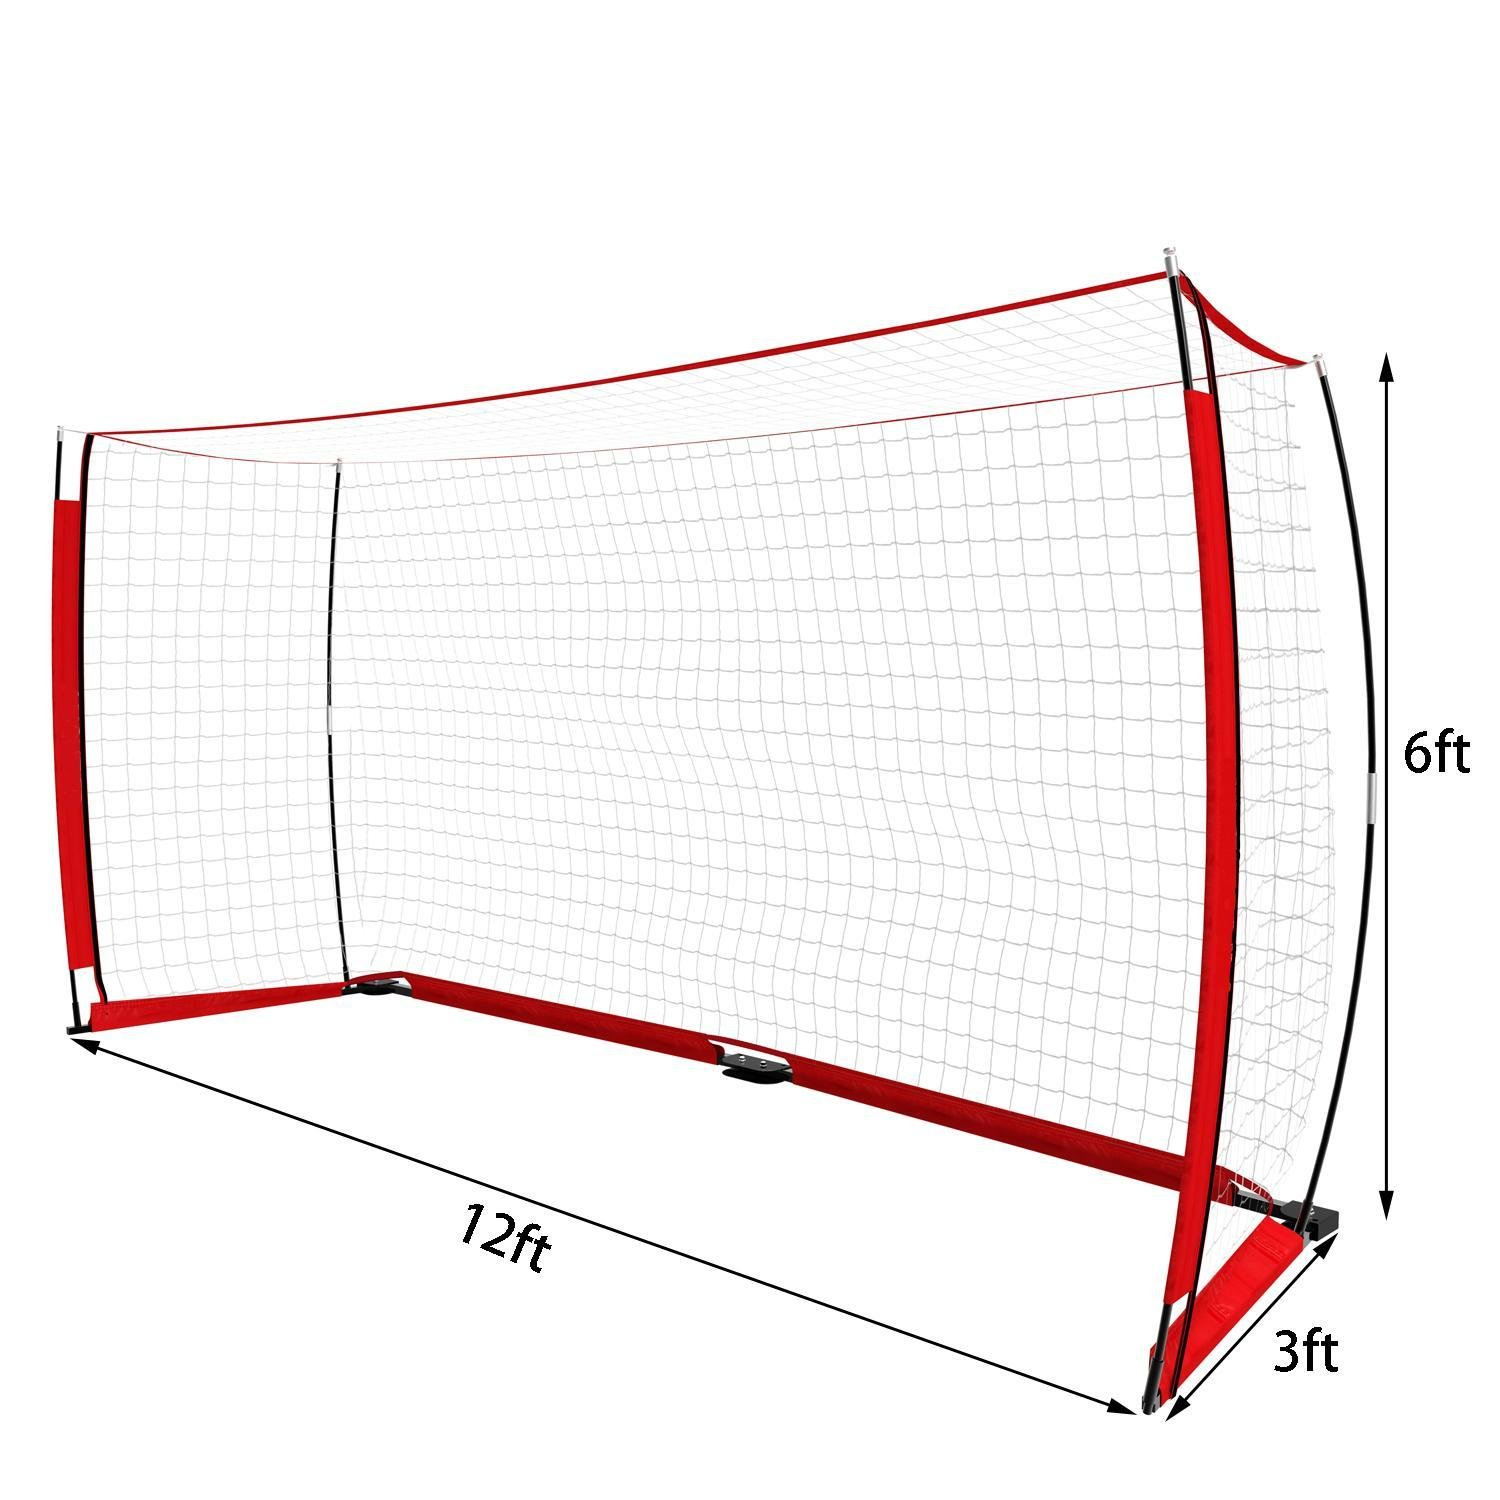 Soccer goal 12 x 6、ポータブルサッカーネットリボンスタイルNet with Bow Frame and Carry Bag ( US Stock ) B074H2WTZY